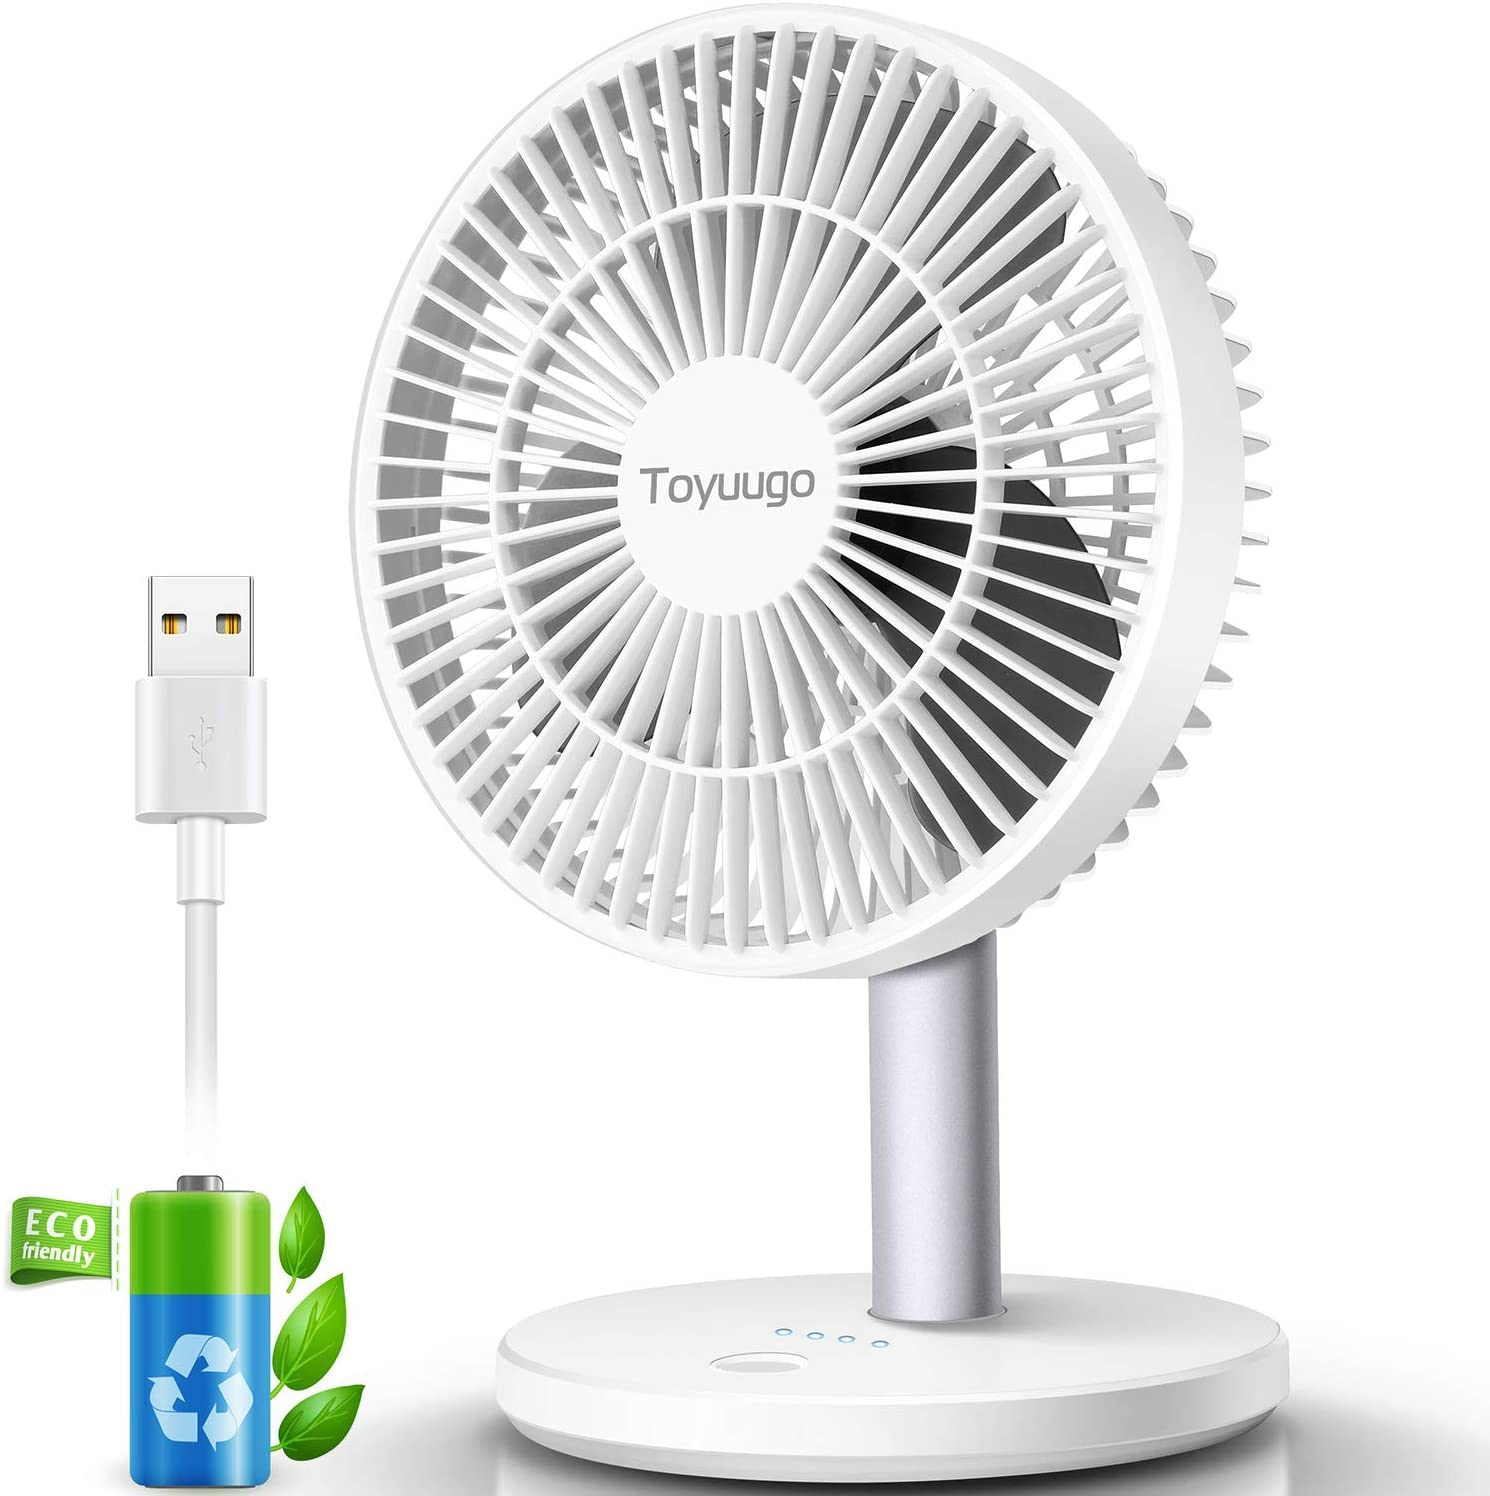 "Toyuugo USB Desk Fan, 5.5"" Ultra Quiet 3 Speed Portable Personal Table Cooling Fan with 90° Adjustment, Easy to Clean, Strong Airflow Table Fan for Office Travel Outdoor Camping Beach(2200mAh-White)"